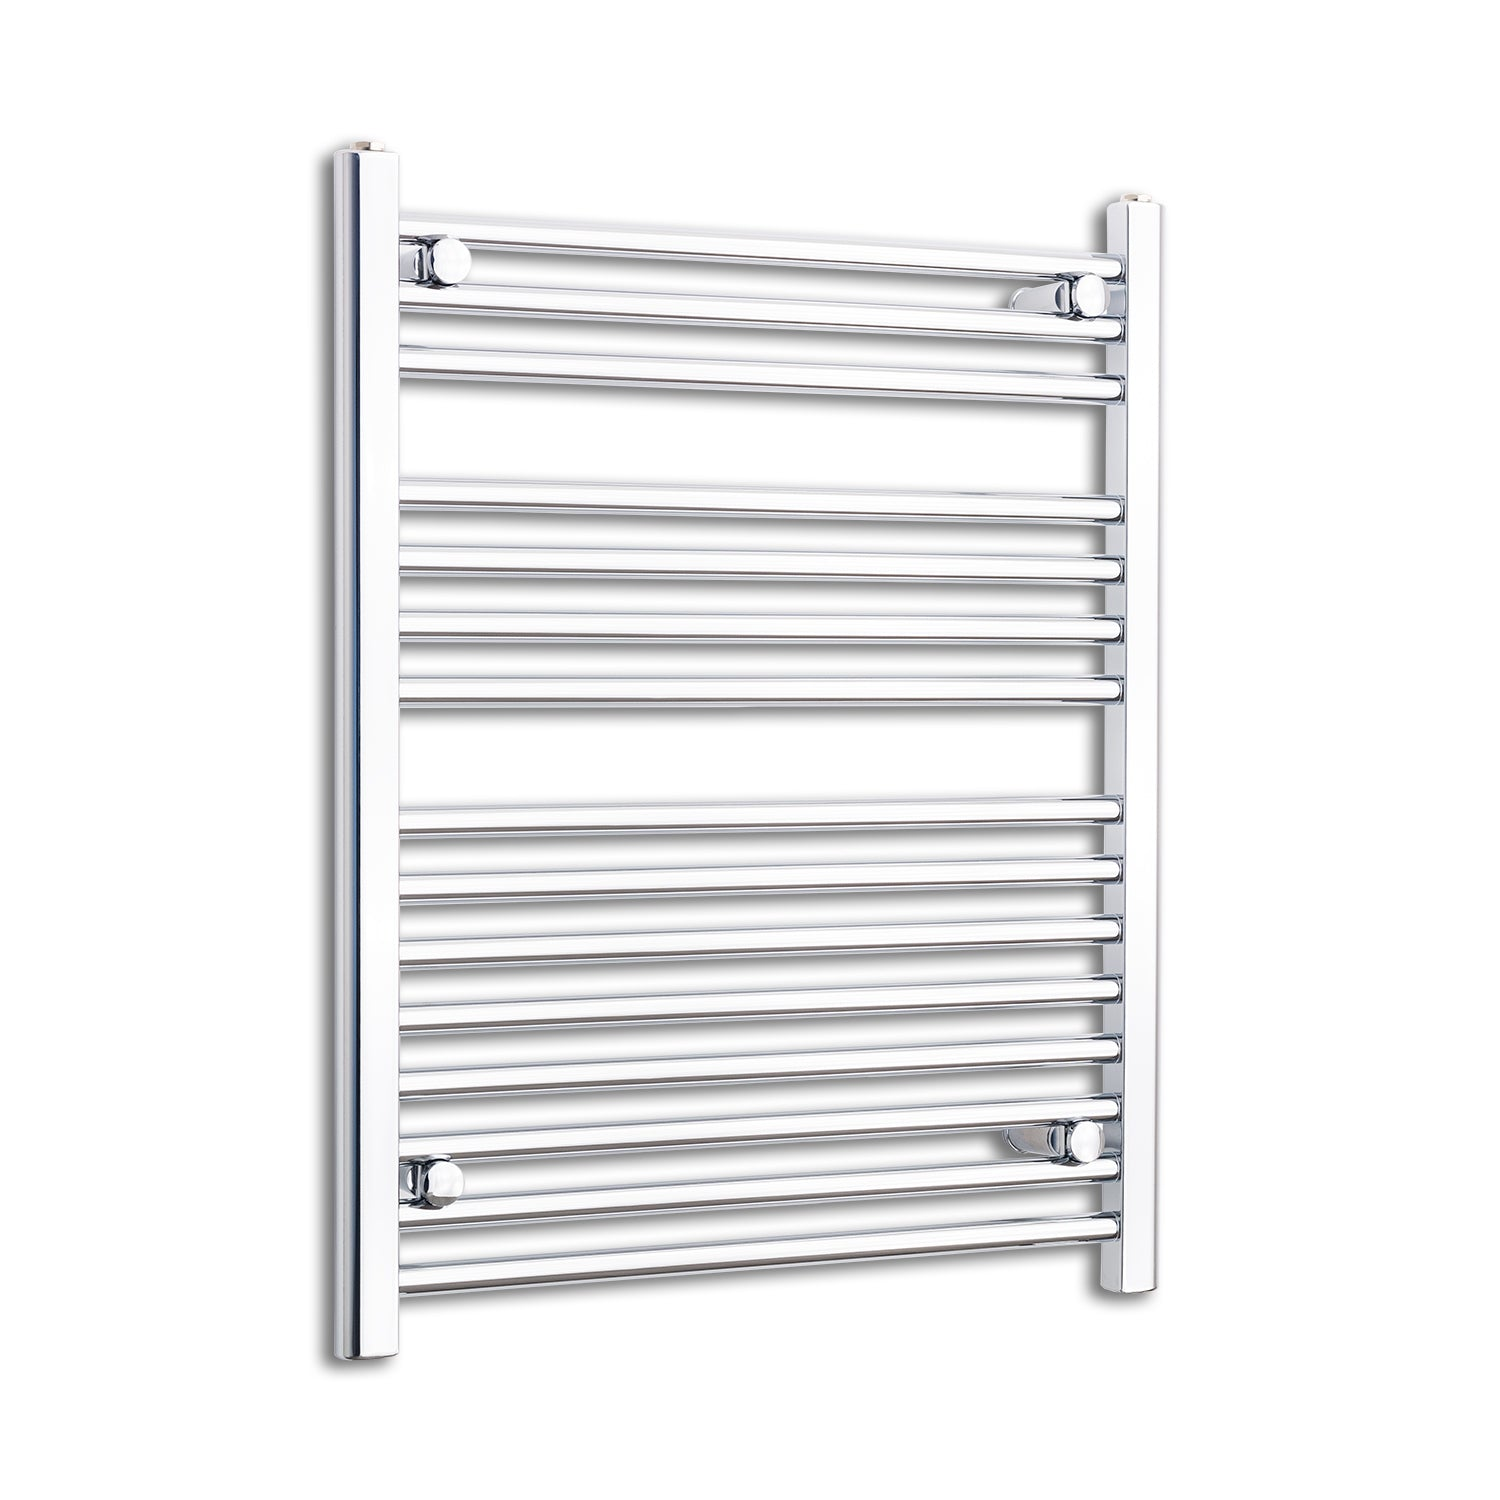 700mm Wide 800mm High Curved Chrome Heated Towel Rail Radiator HTR,Towel Rail Only